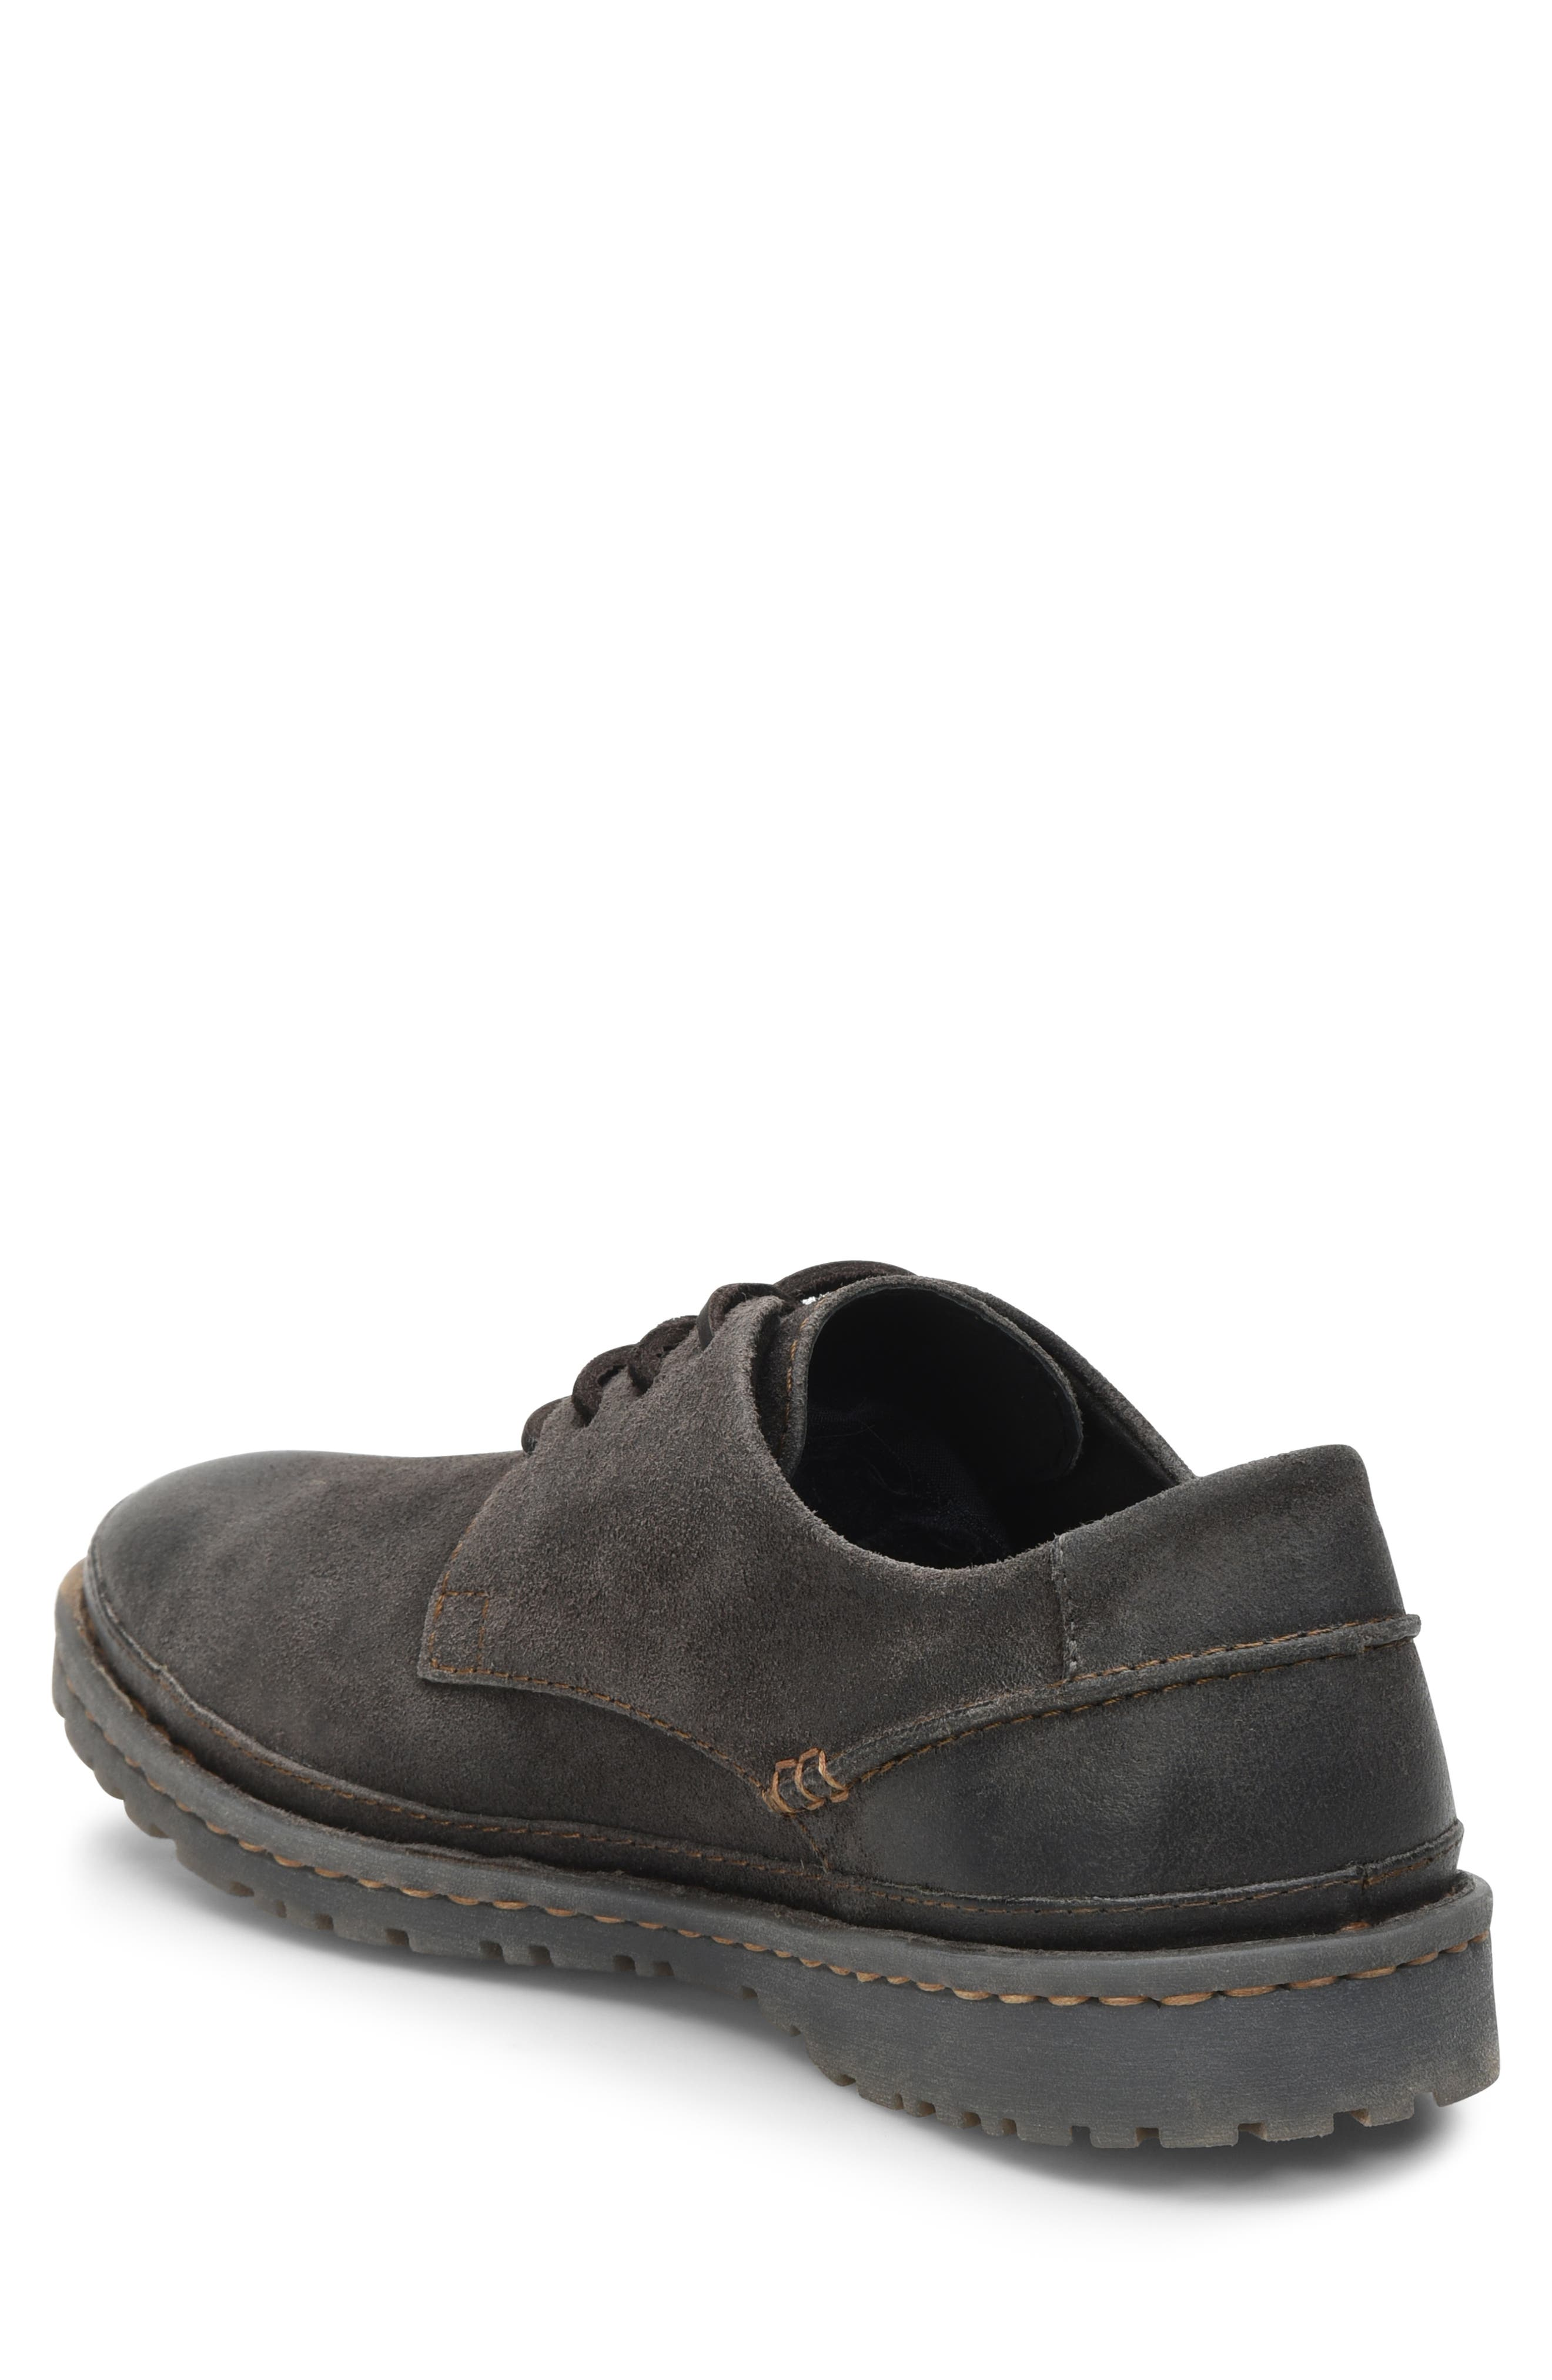 Gilles Plain Toe Derby,                             Alternate thumbnail 2, color,                             DARK GREY LEATHER